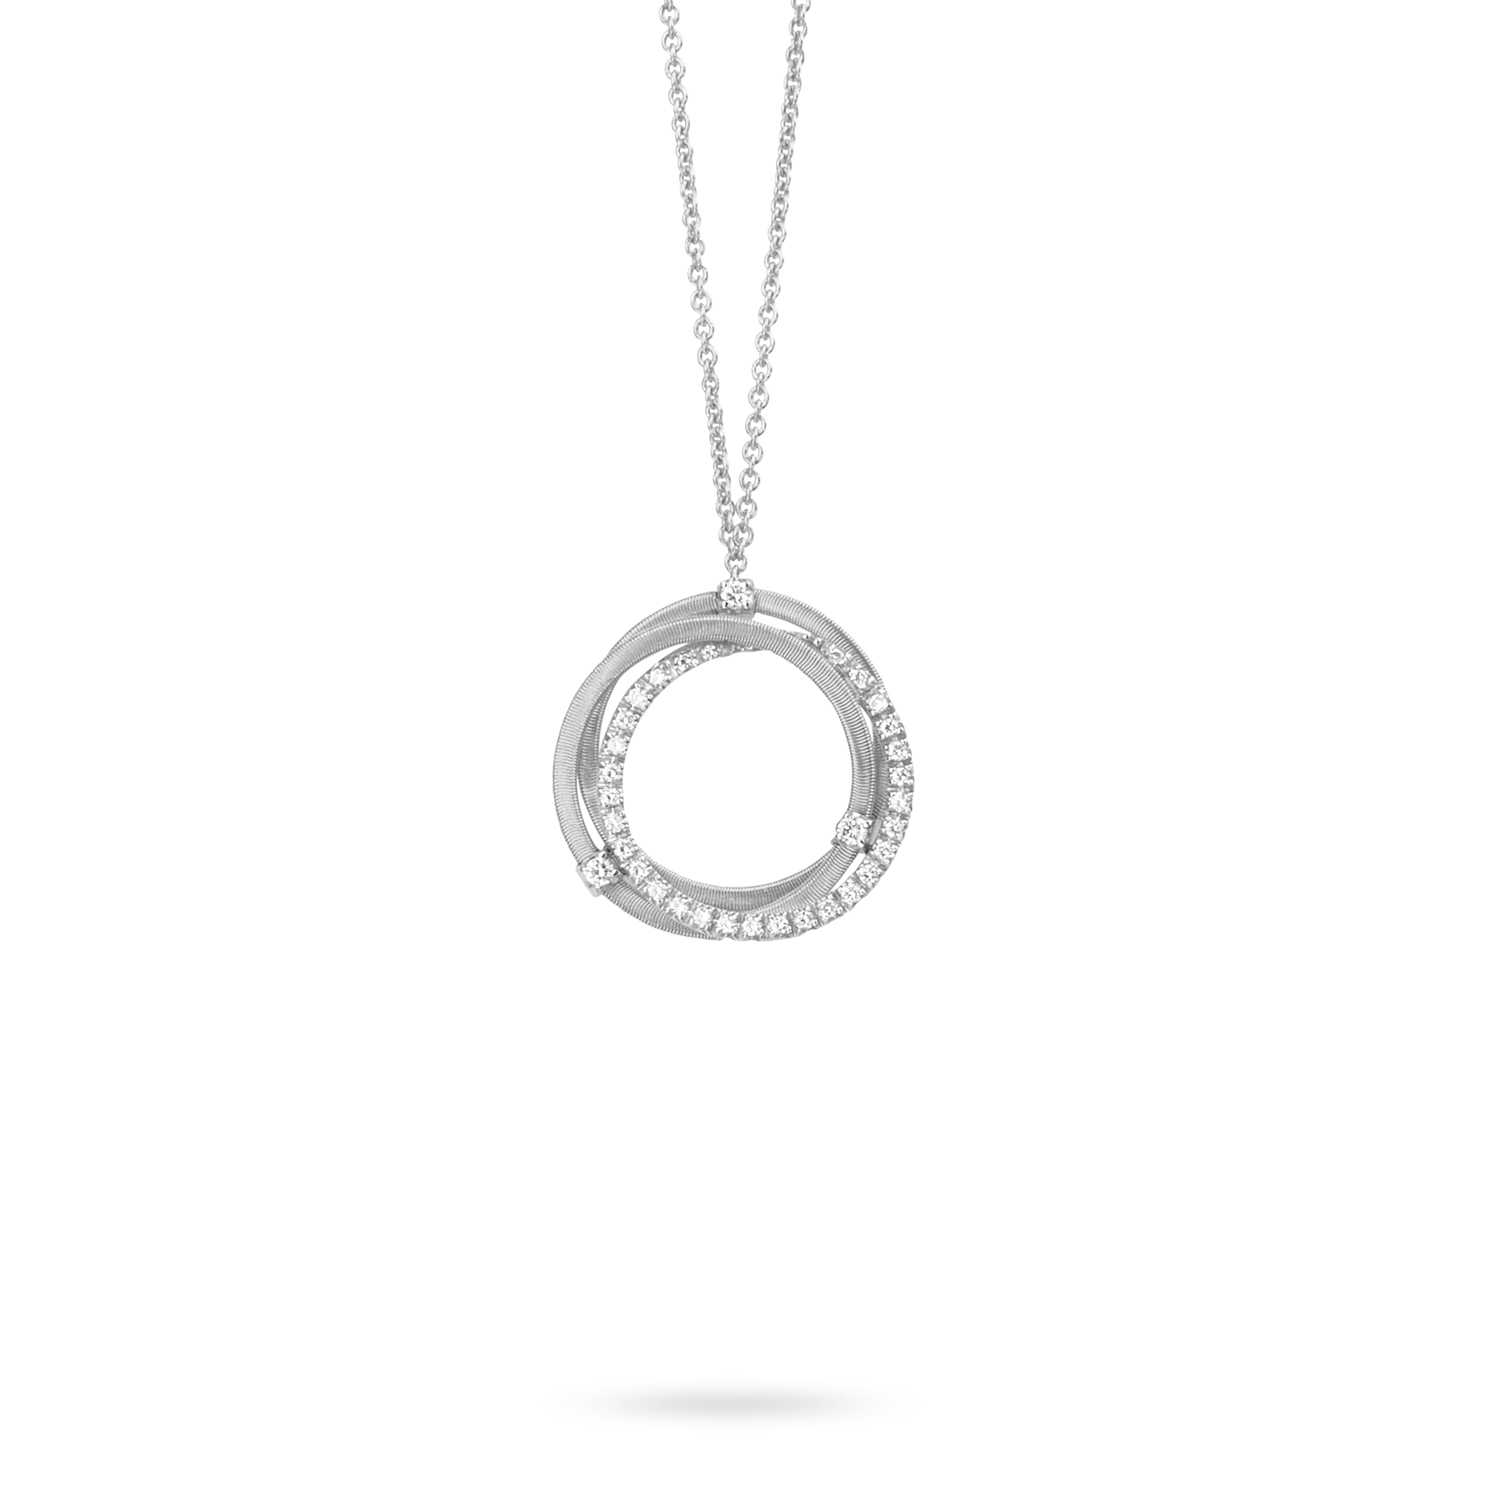 Marco Bicego Goa White Gold Interlinked Circles Necklace